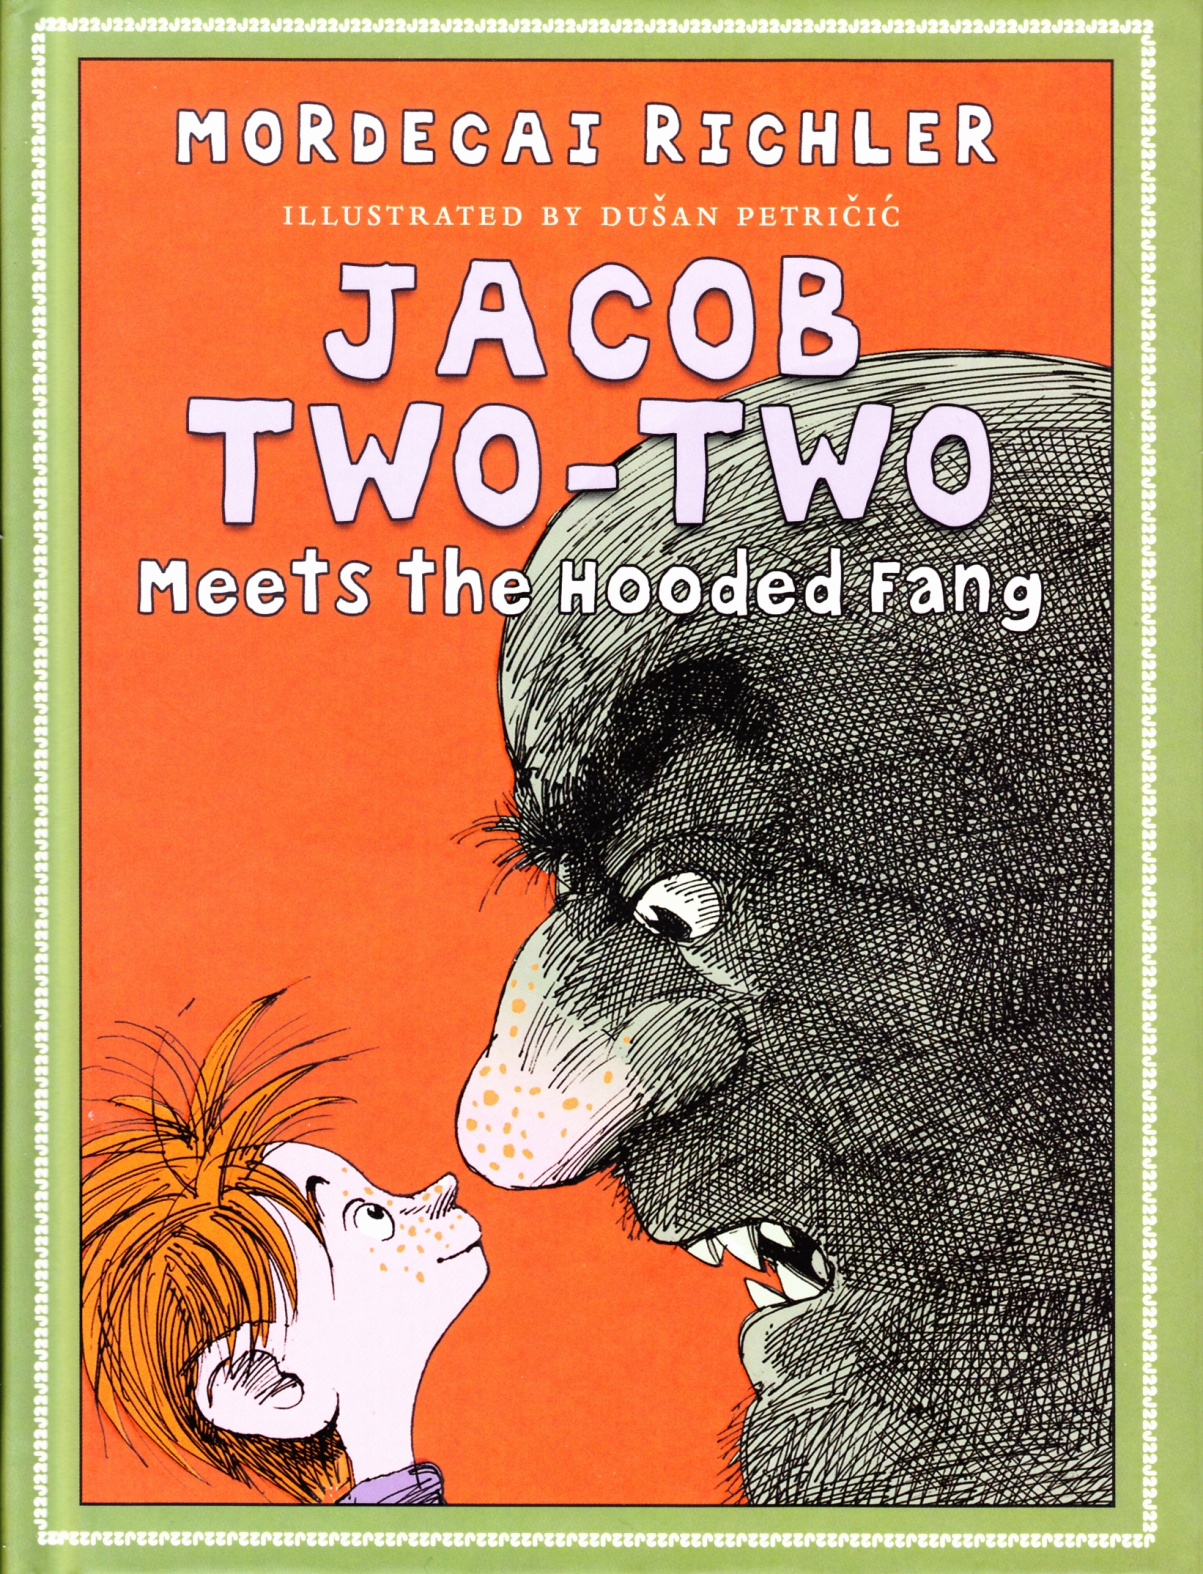 C:\Users\Robert\Documents\CARTOONING ILLUSTRATION ANIMATION\IMAGE CARTOON\IMAGE CARTOON J\JACOB TWO TWO, Jacob Two Two & The Hooded Fang, 2000.jpg